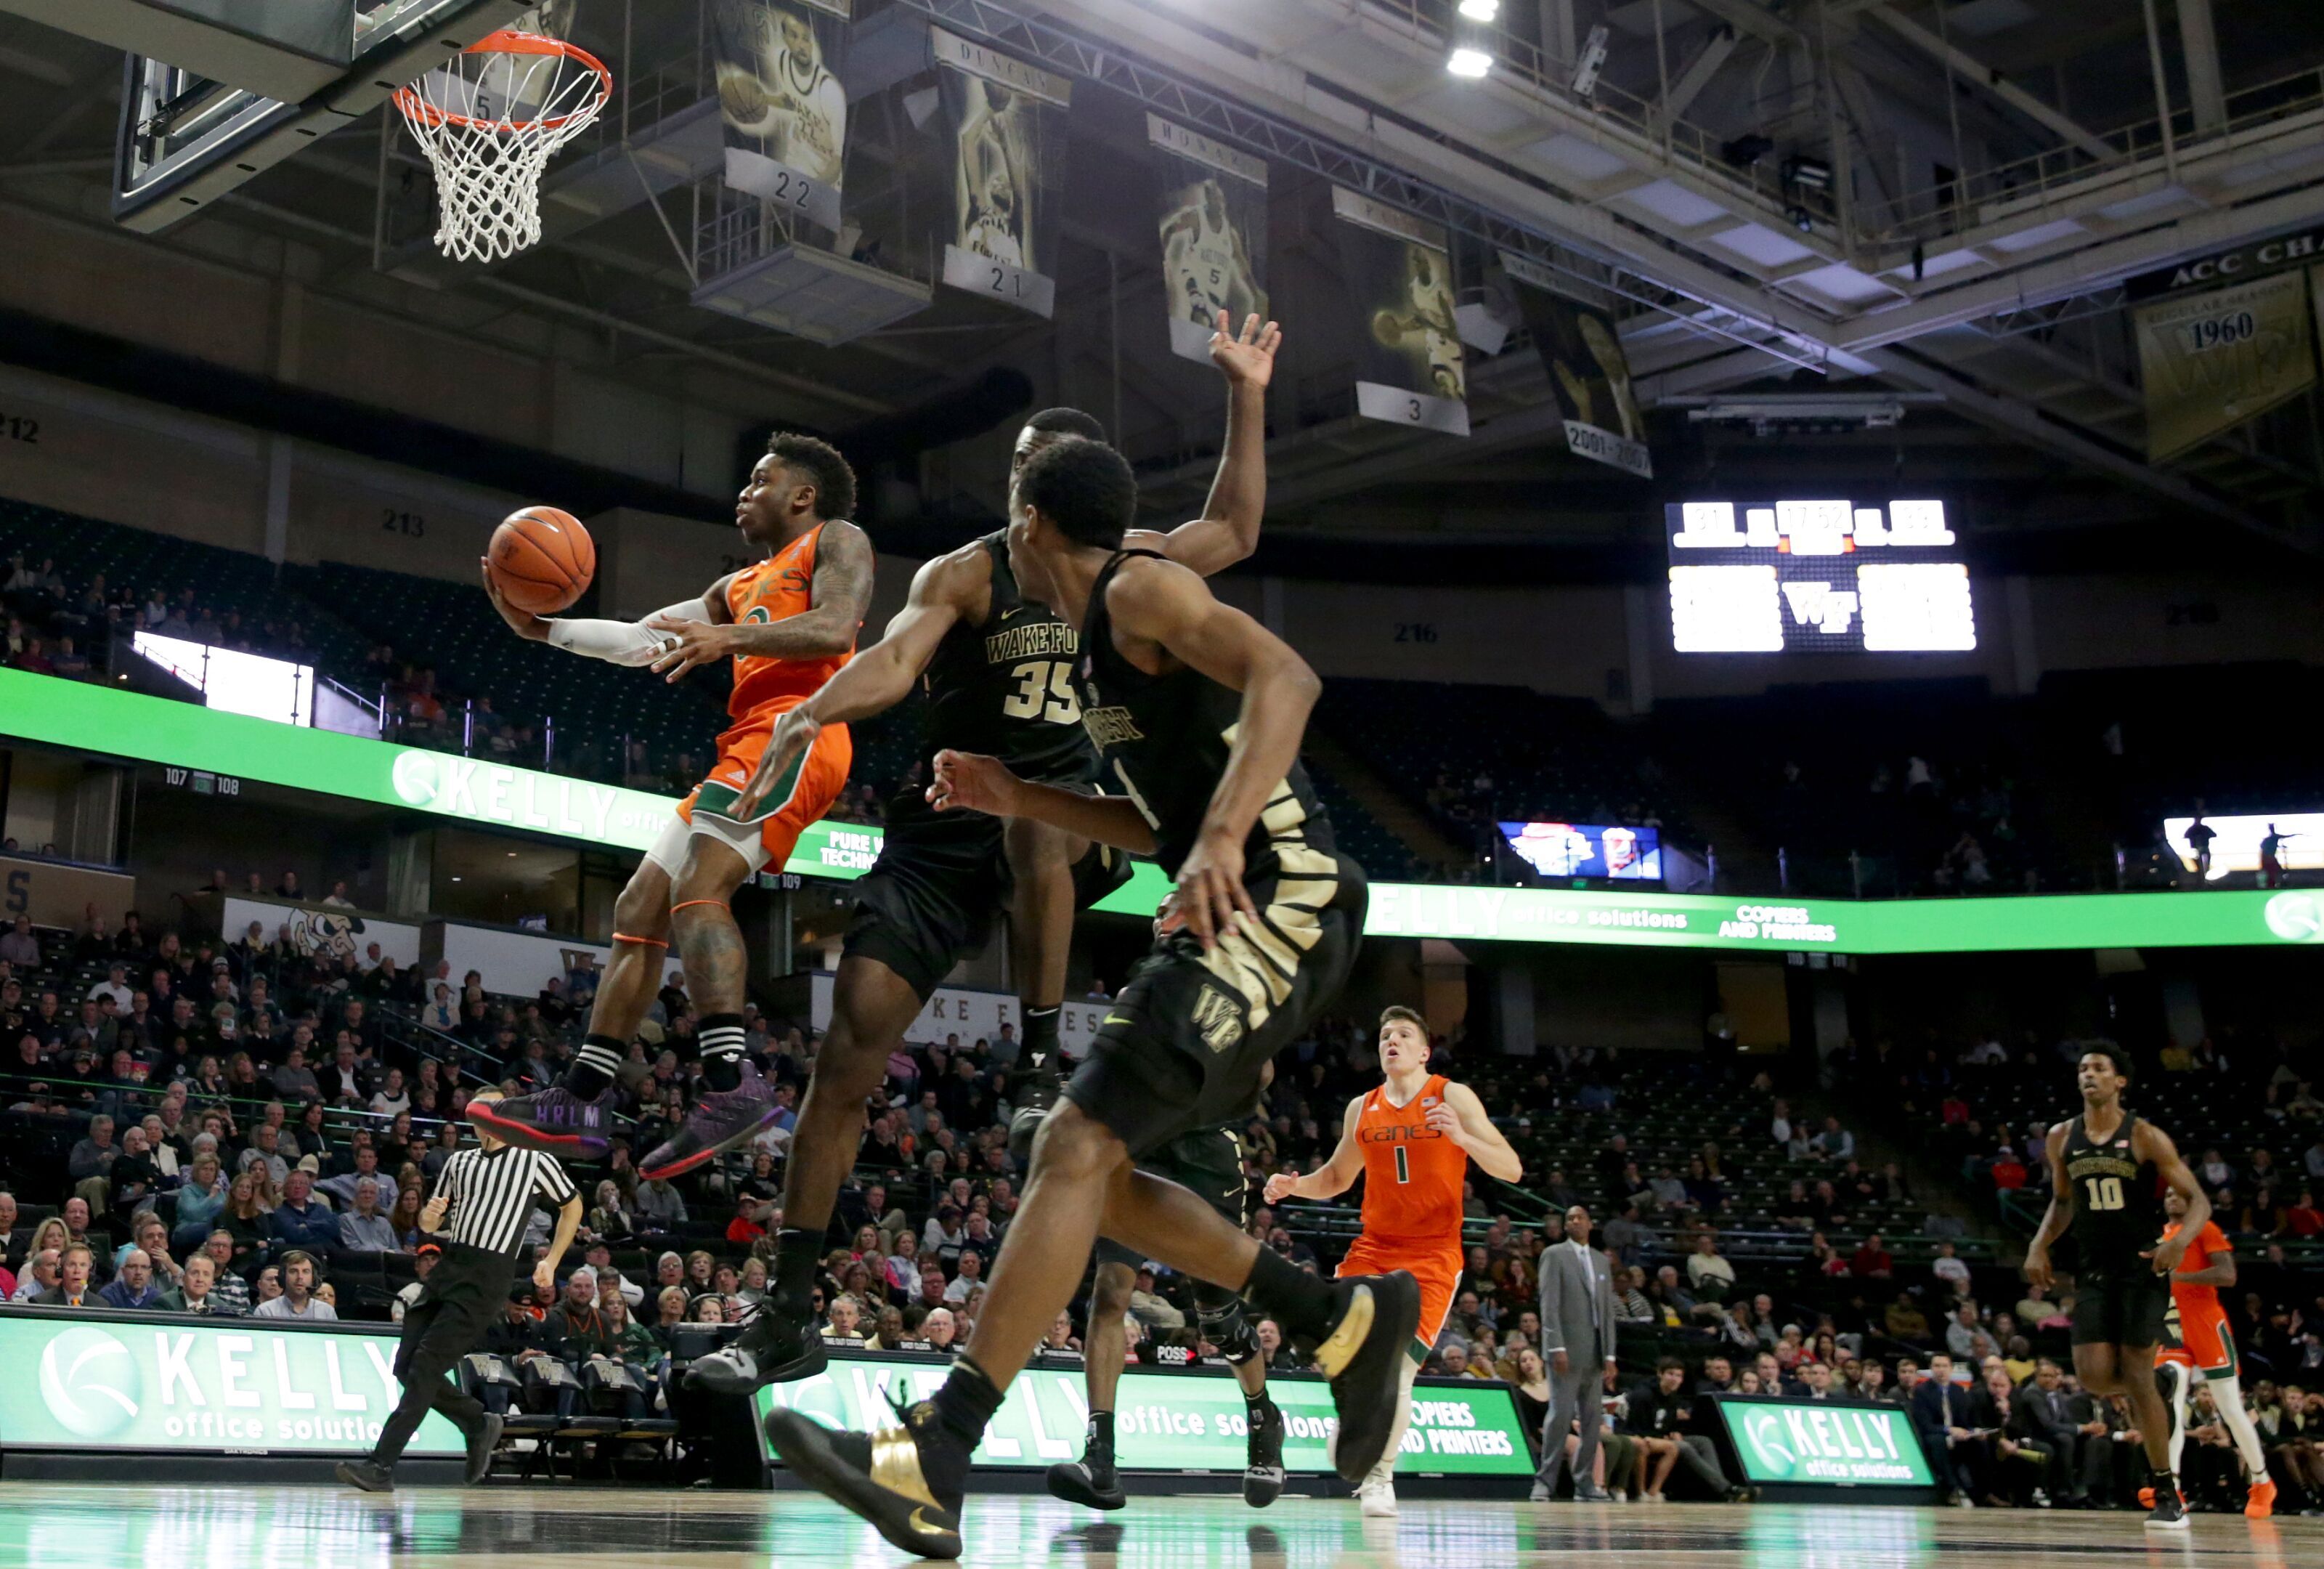 For Miami basketball to improve in 2019-20 Chris Lykes needs help